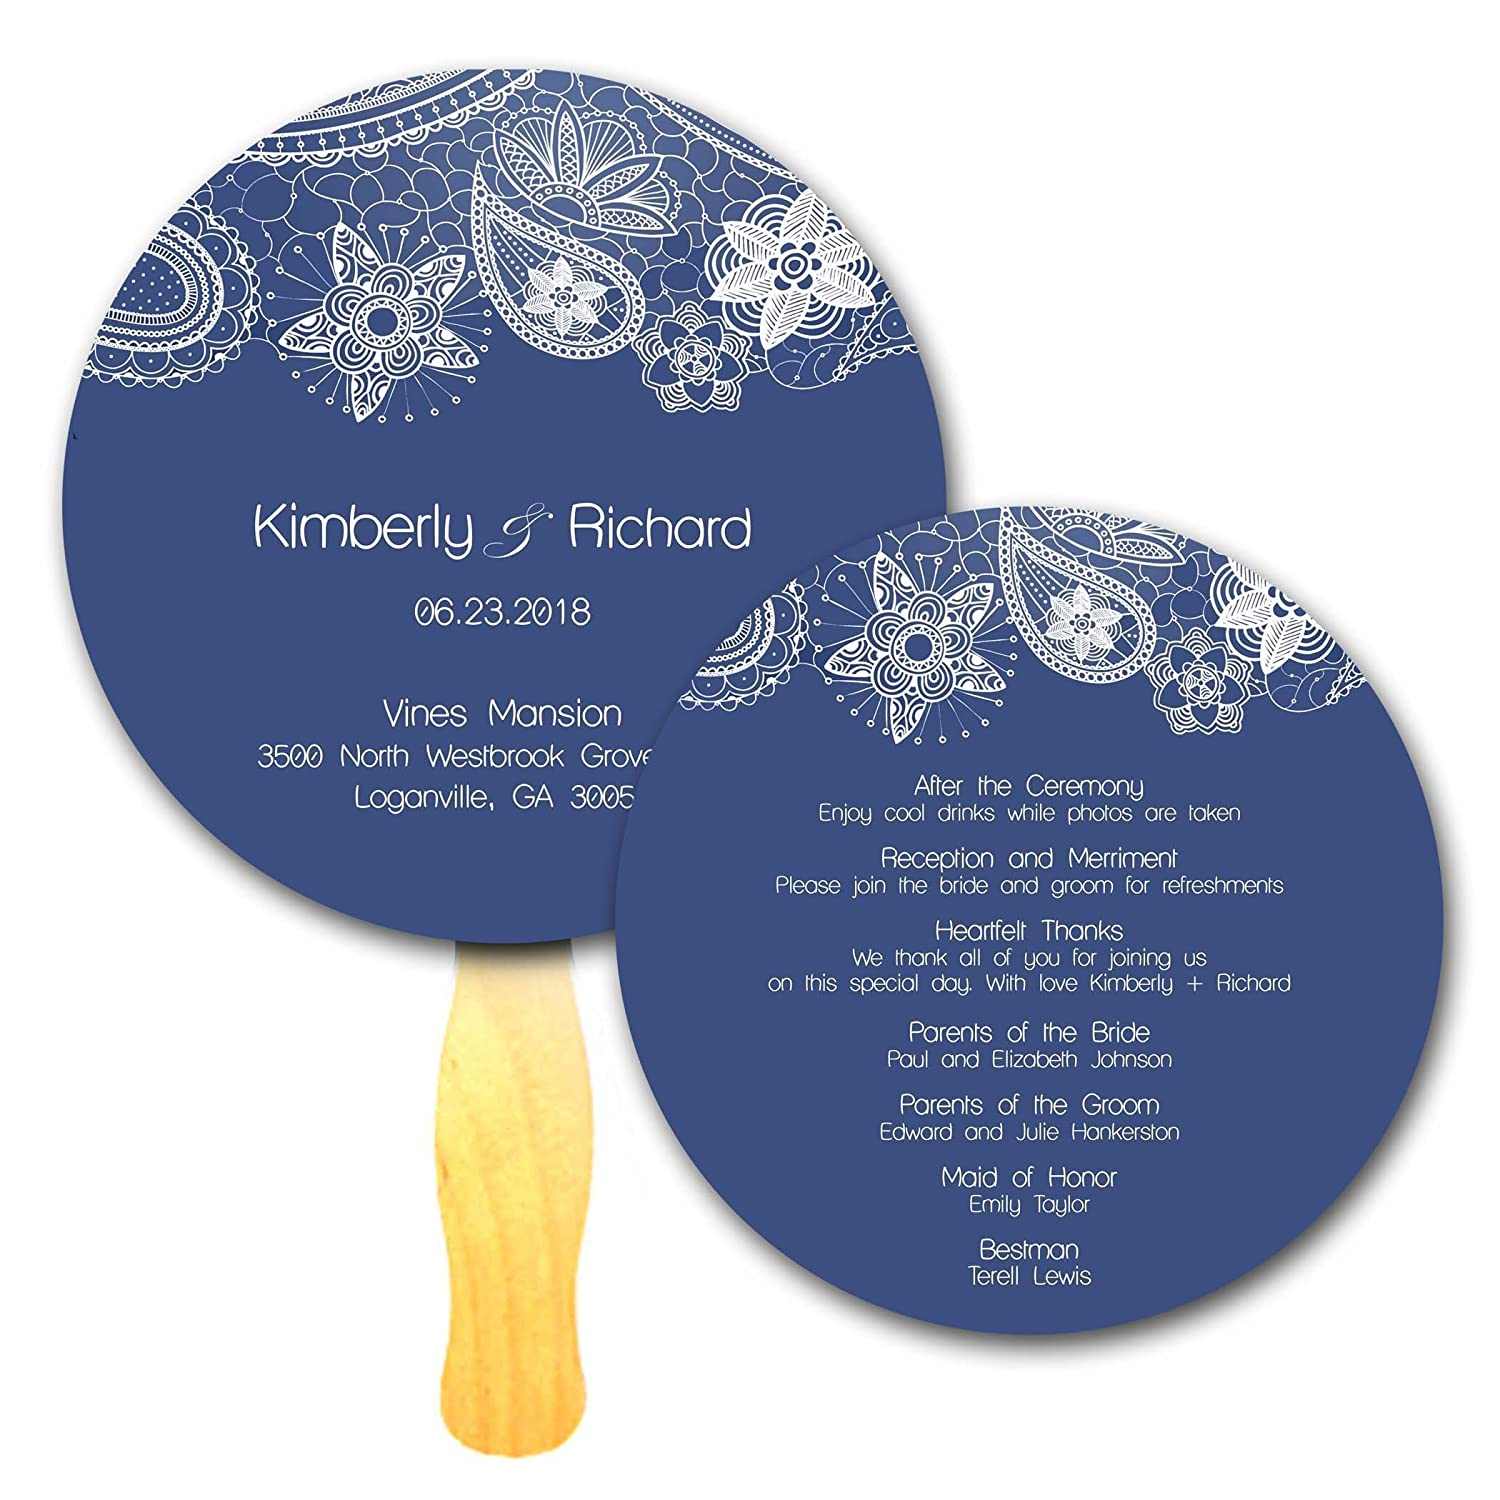 Custom Blue Lace Damask Paisley Circle Ceremony Event Program Hand Paddle Fans - Set of 20 - Double sided Full Printed Color Die Cut Sign Cardstock on Wooden Wavy Sticks